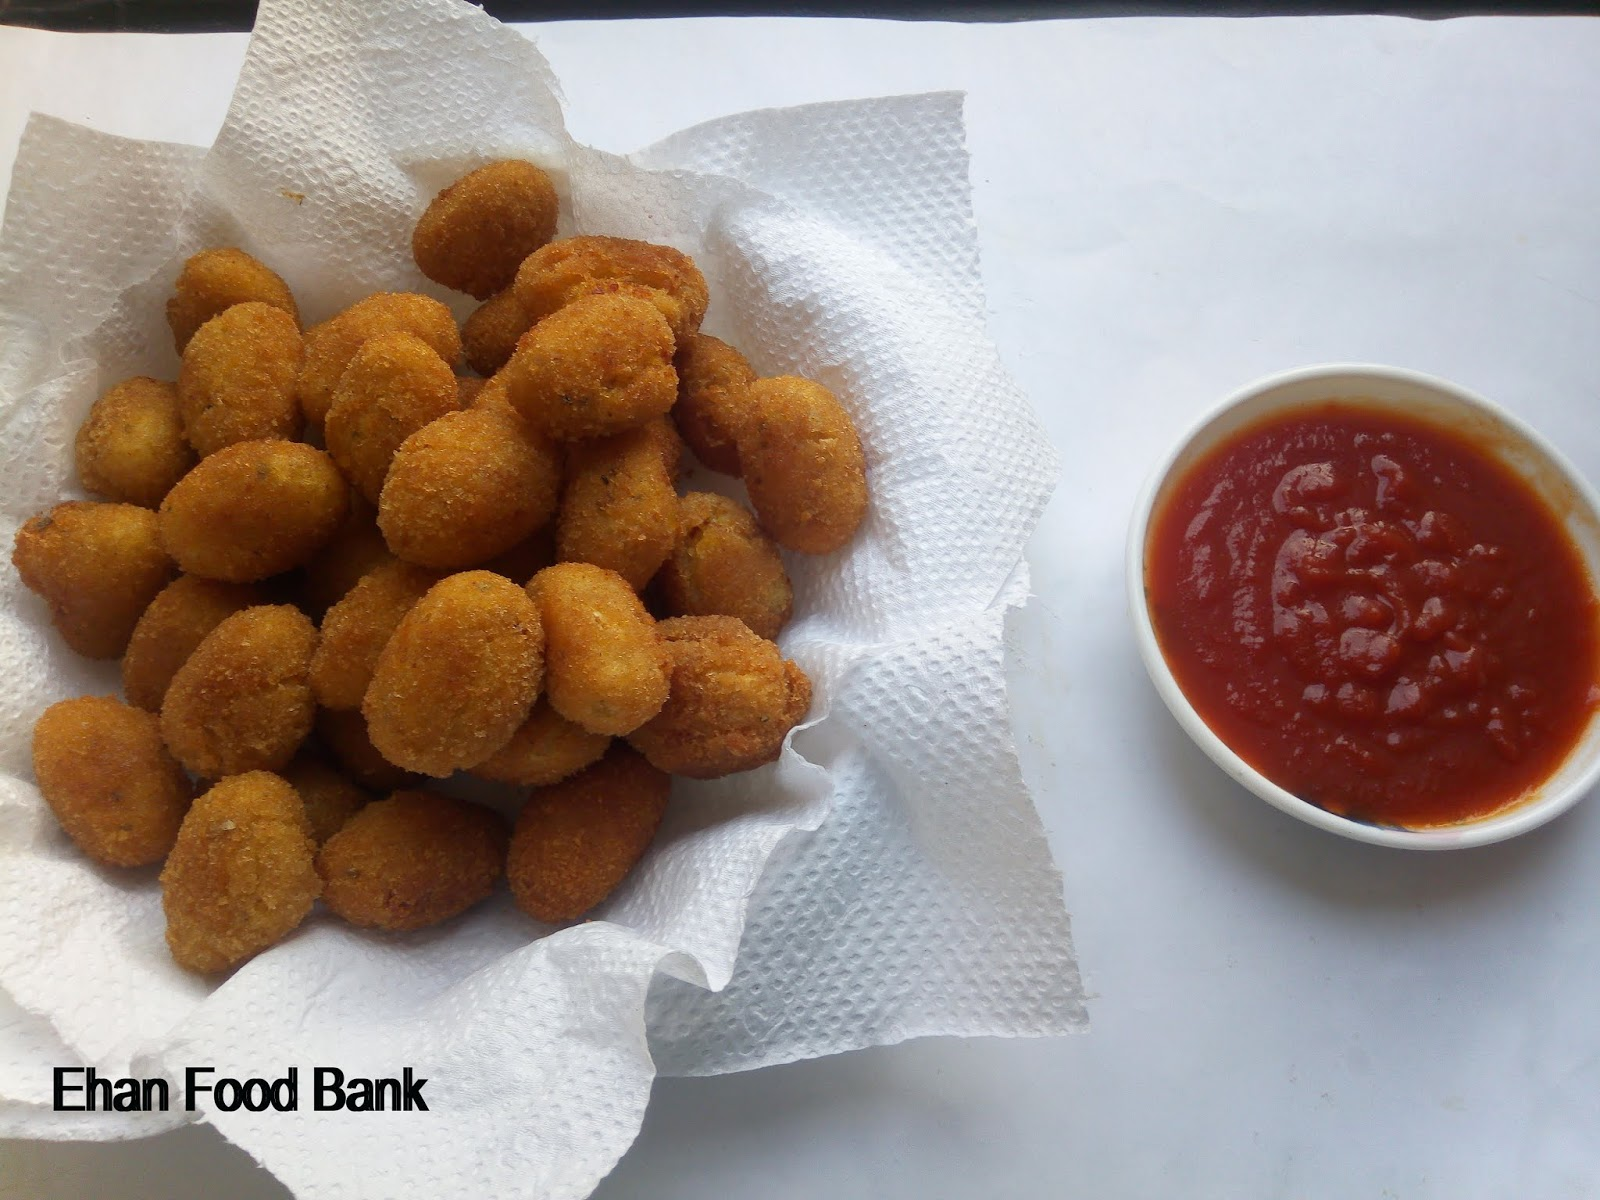 veg potato nuggets recipe, mashed potato nuggets recipe, potato nuggets without cheese, potato nuggets recipe sanjeev kapoor, potato nuggets recipe in tamil, frozen potato nuggets, chicken potato nuggets, Spicy potato nuggets by Ehan Food Bank